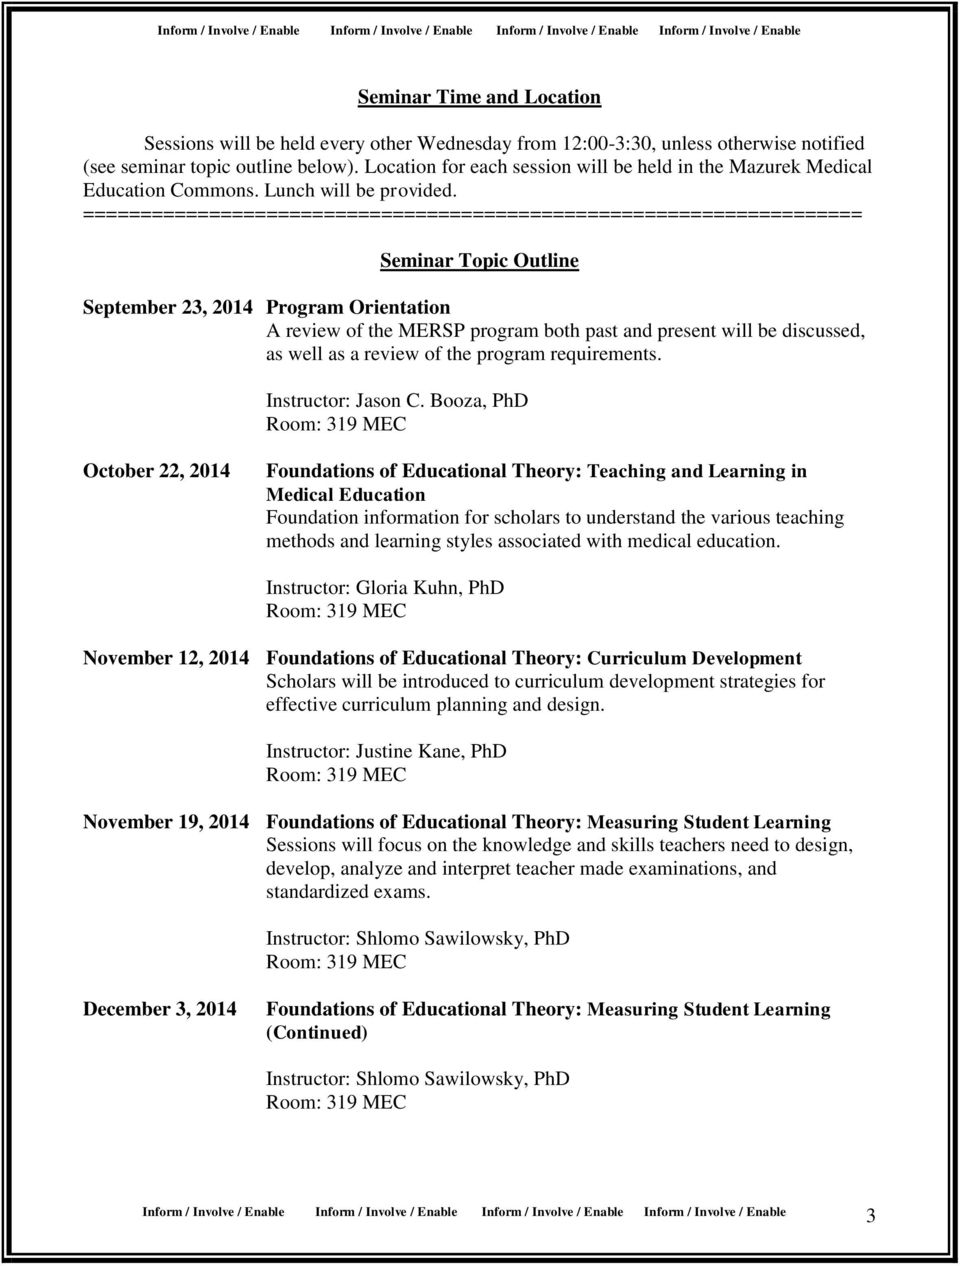 ==================================================================== Seminar Topic Outline September 23, 2014 Program Orientation A review of the MERSP program both past and present will be